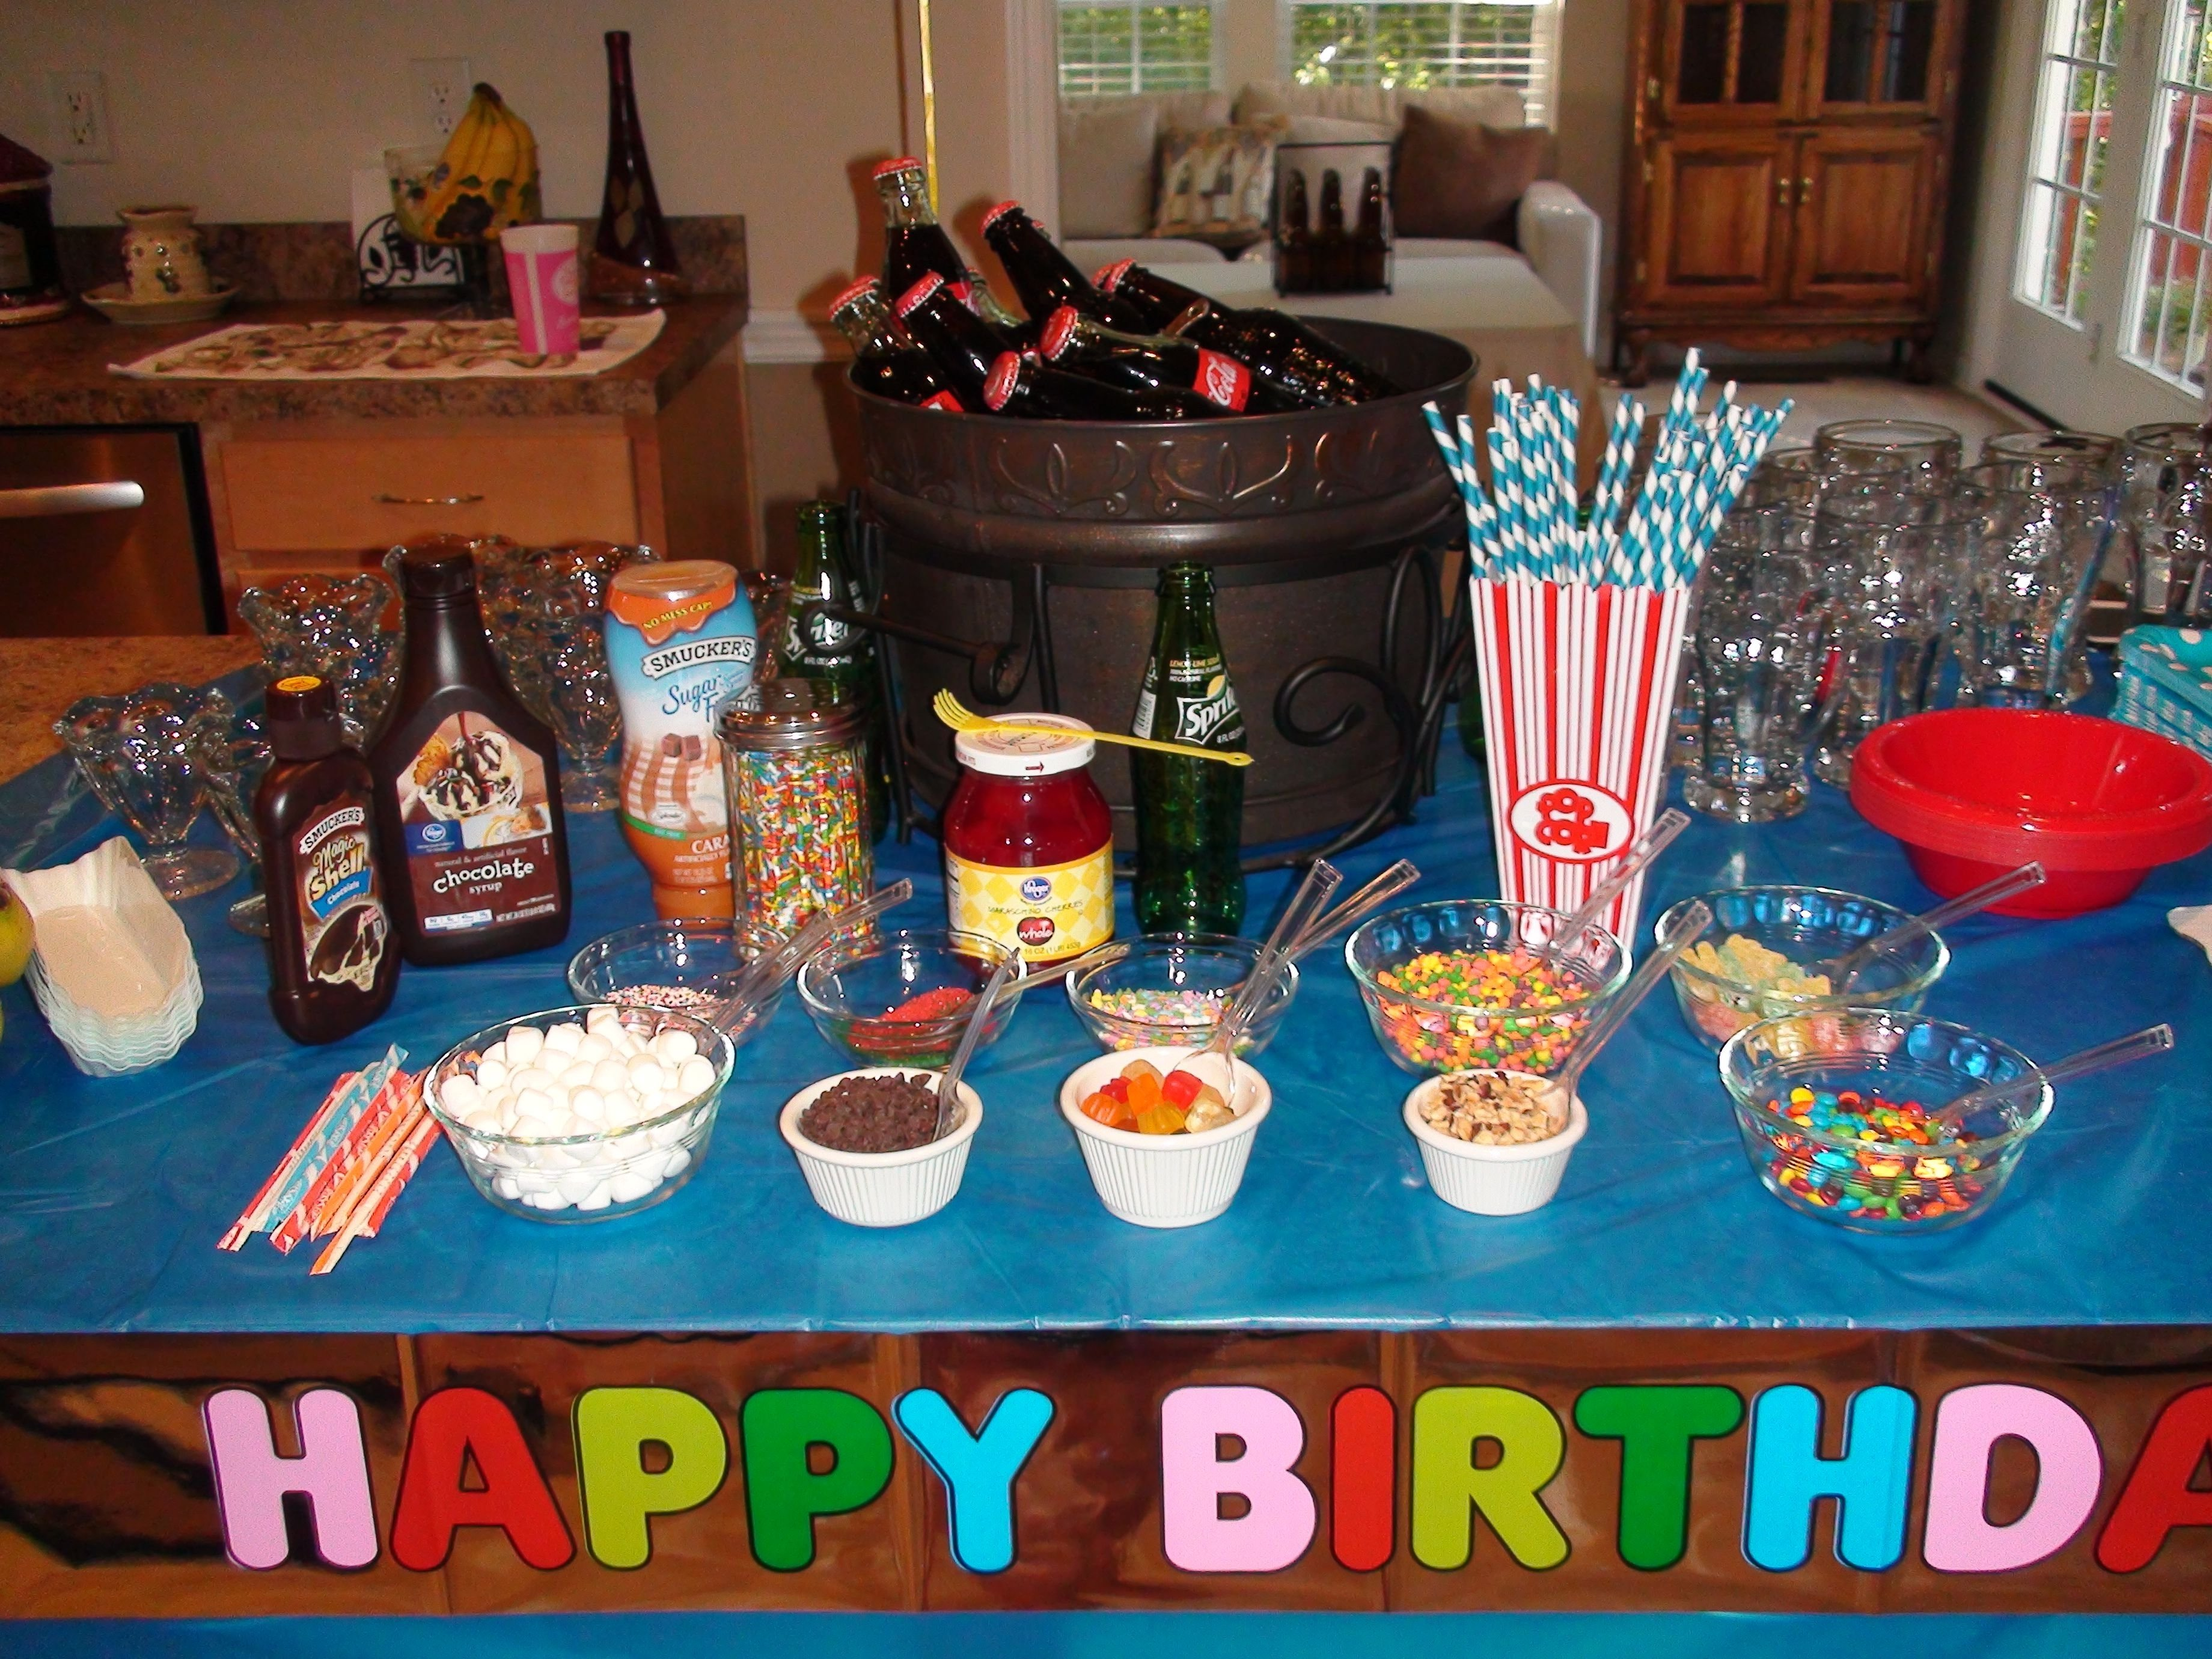 12 year old party, root beer floats, banana splits, ice cream with